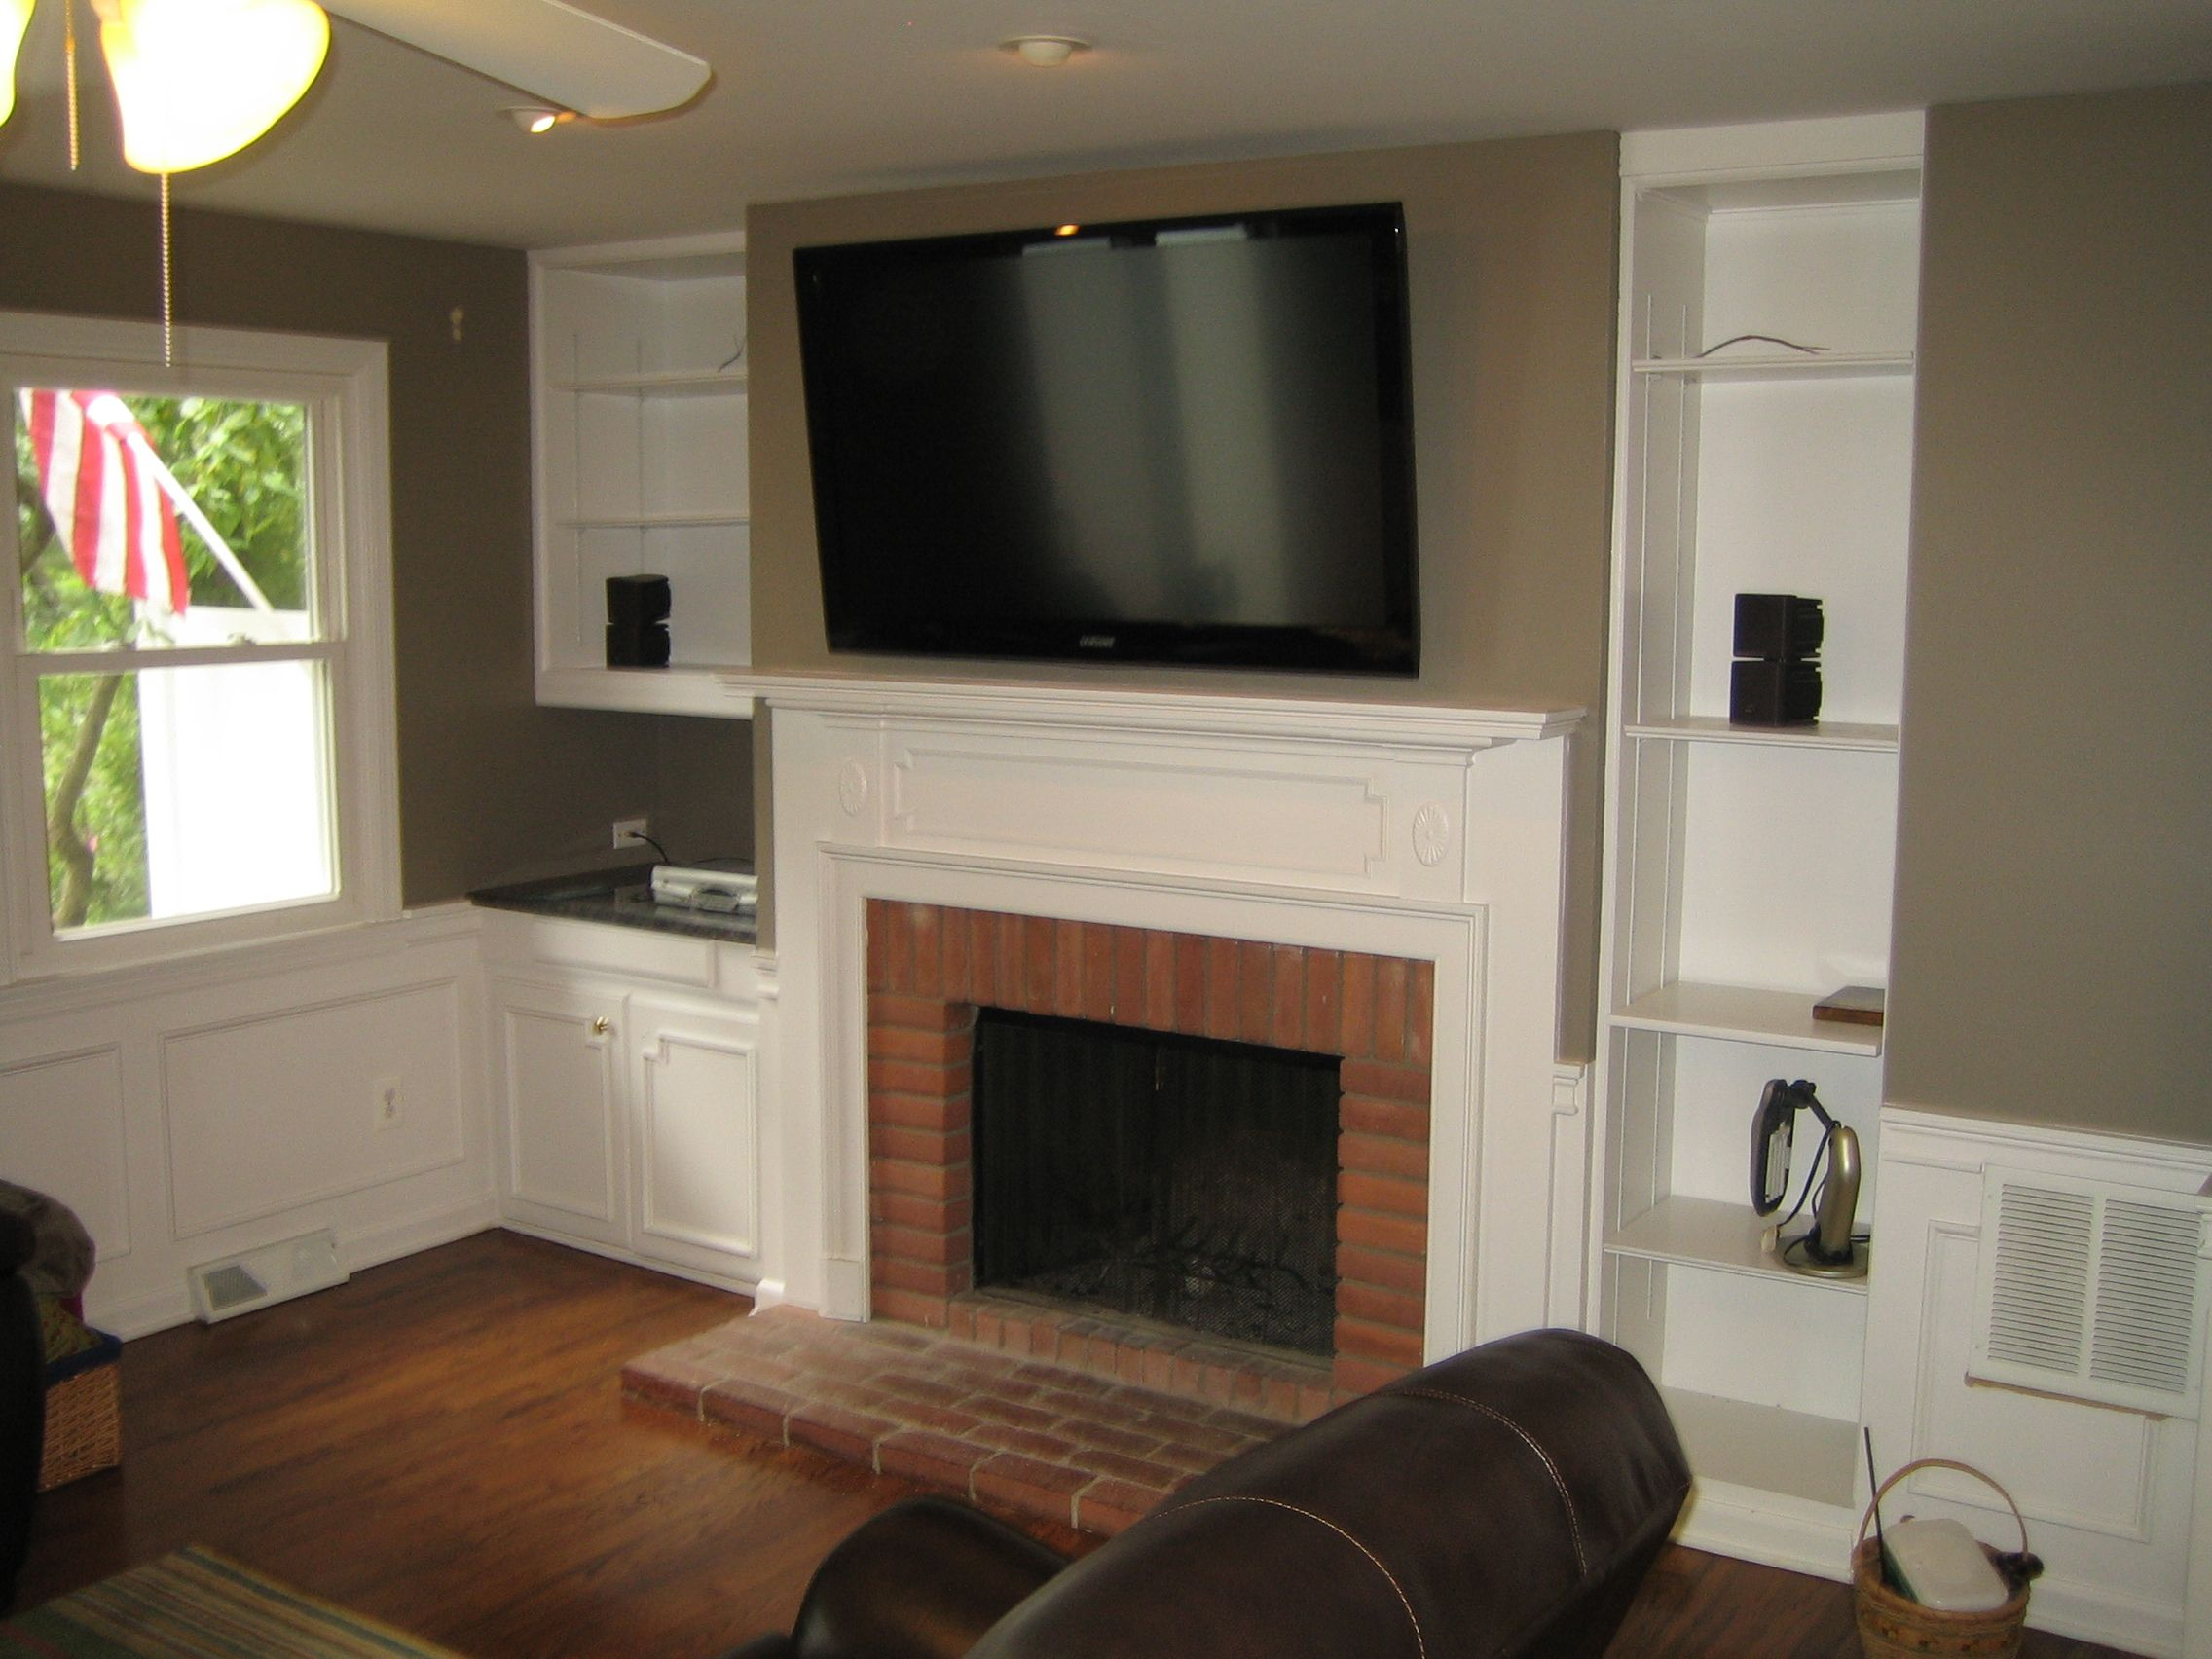 Large Tv Over Fireplace Woodbridge Ct Mount Above Richey Group Llc Audio